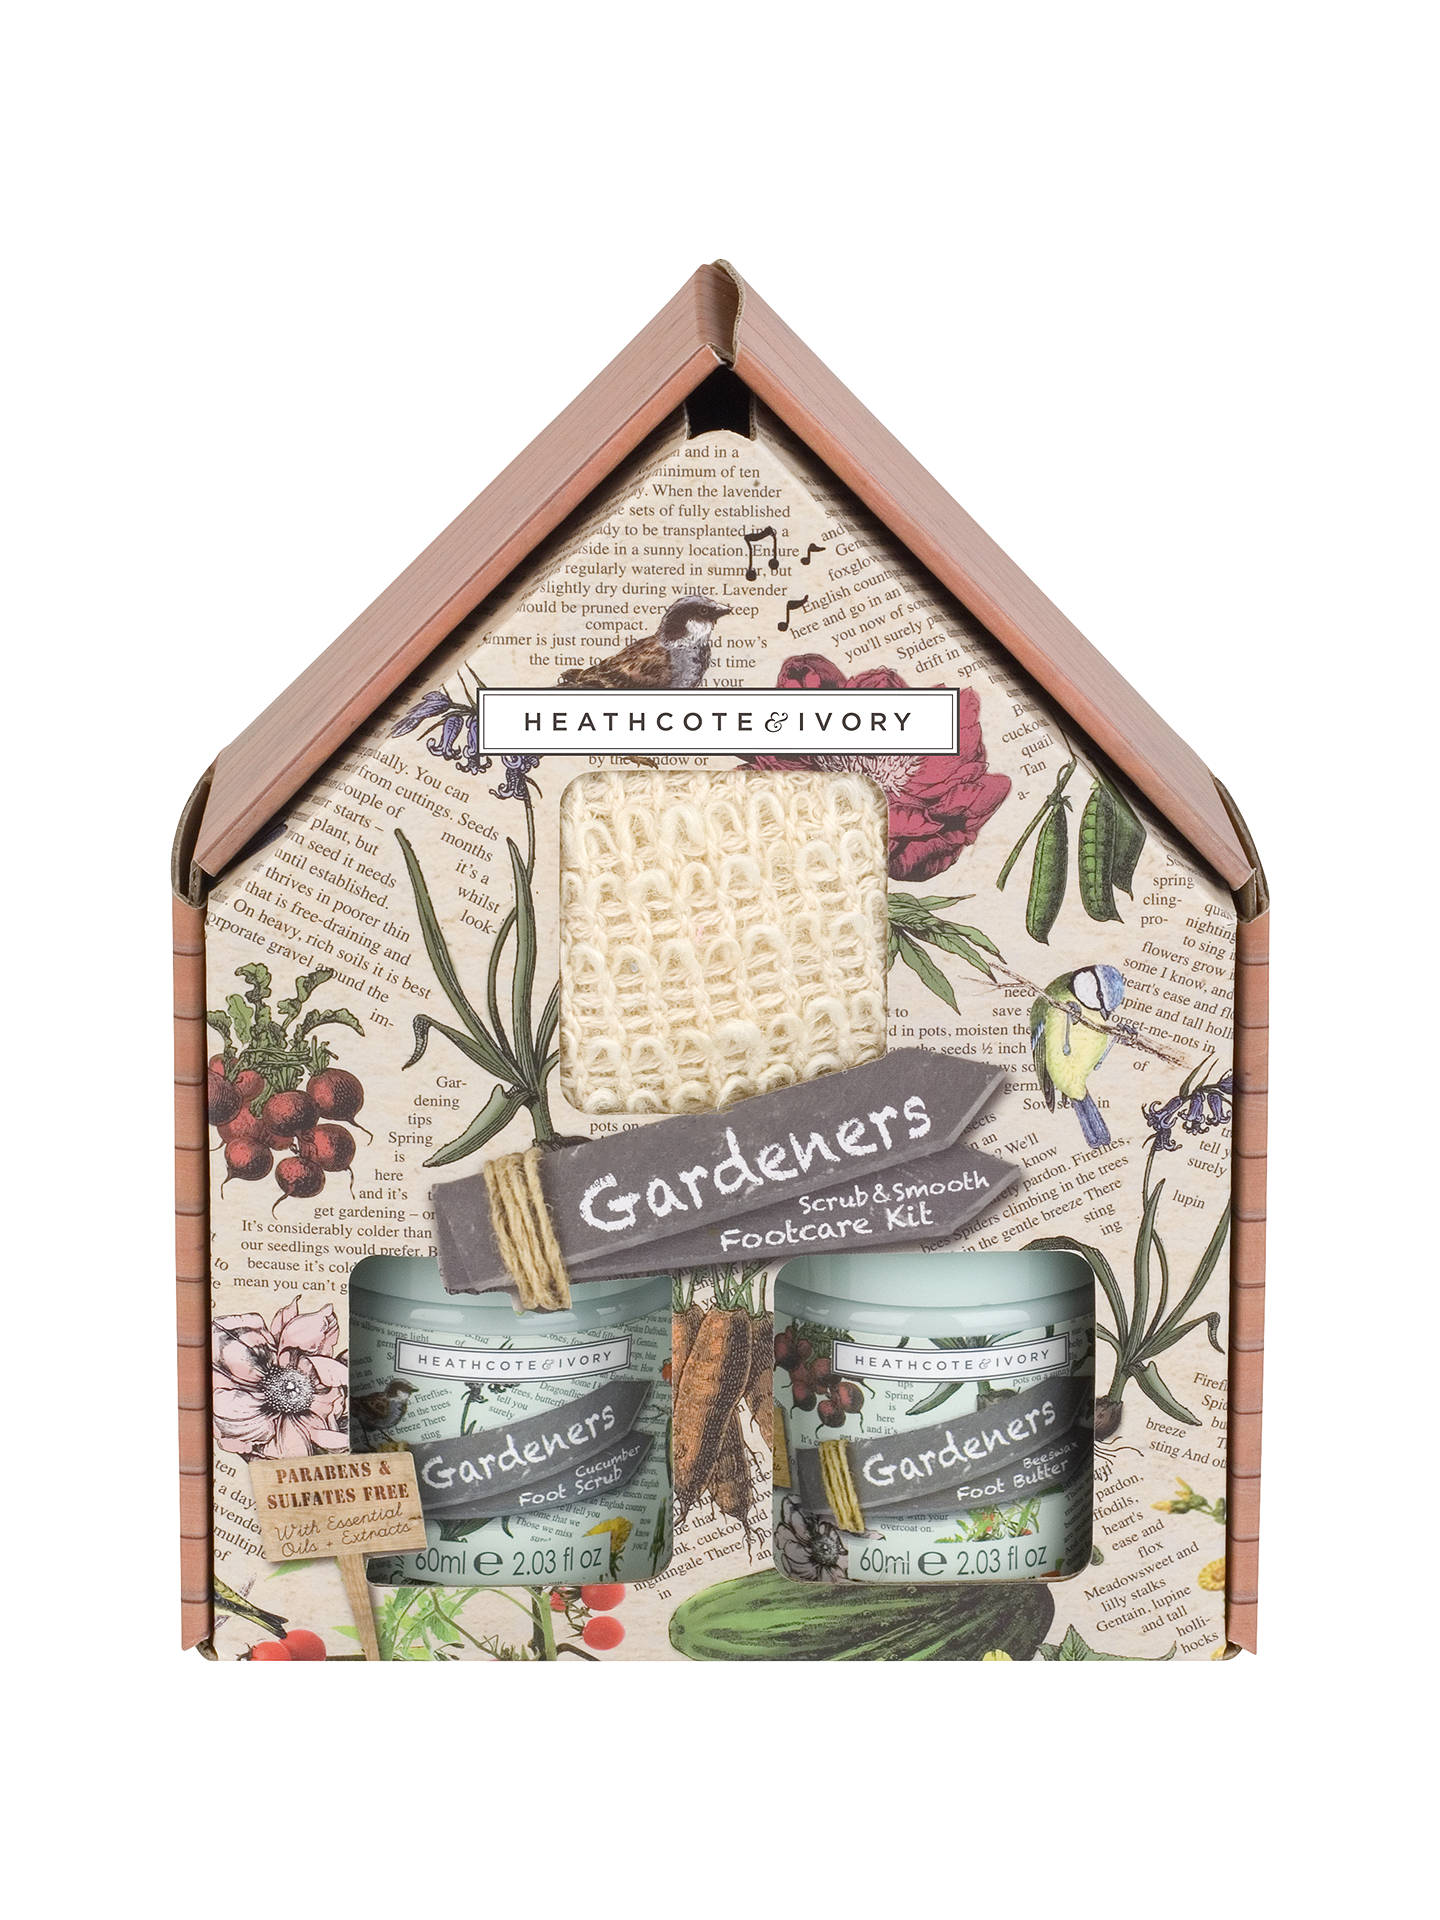 Buy Heathcote & Ivory Gardeners Scrub & Smooth Foot Care Kit Online at johnlewis.com